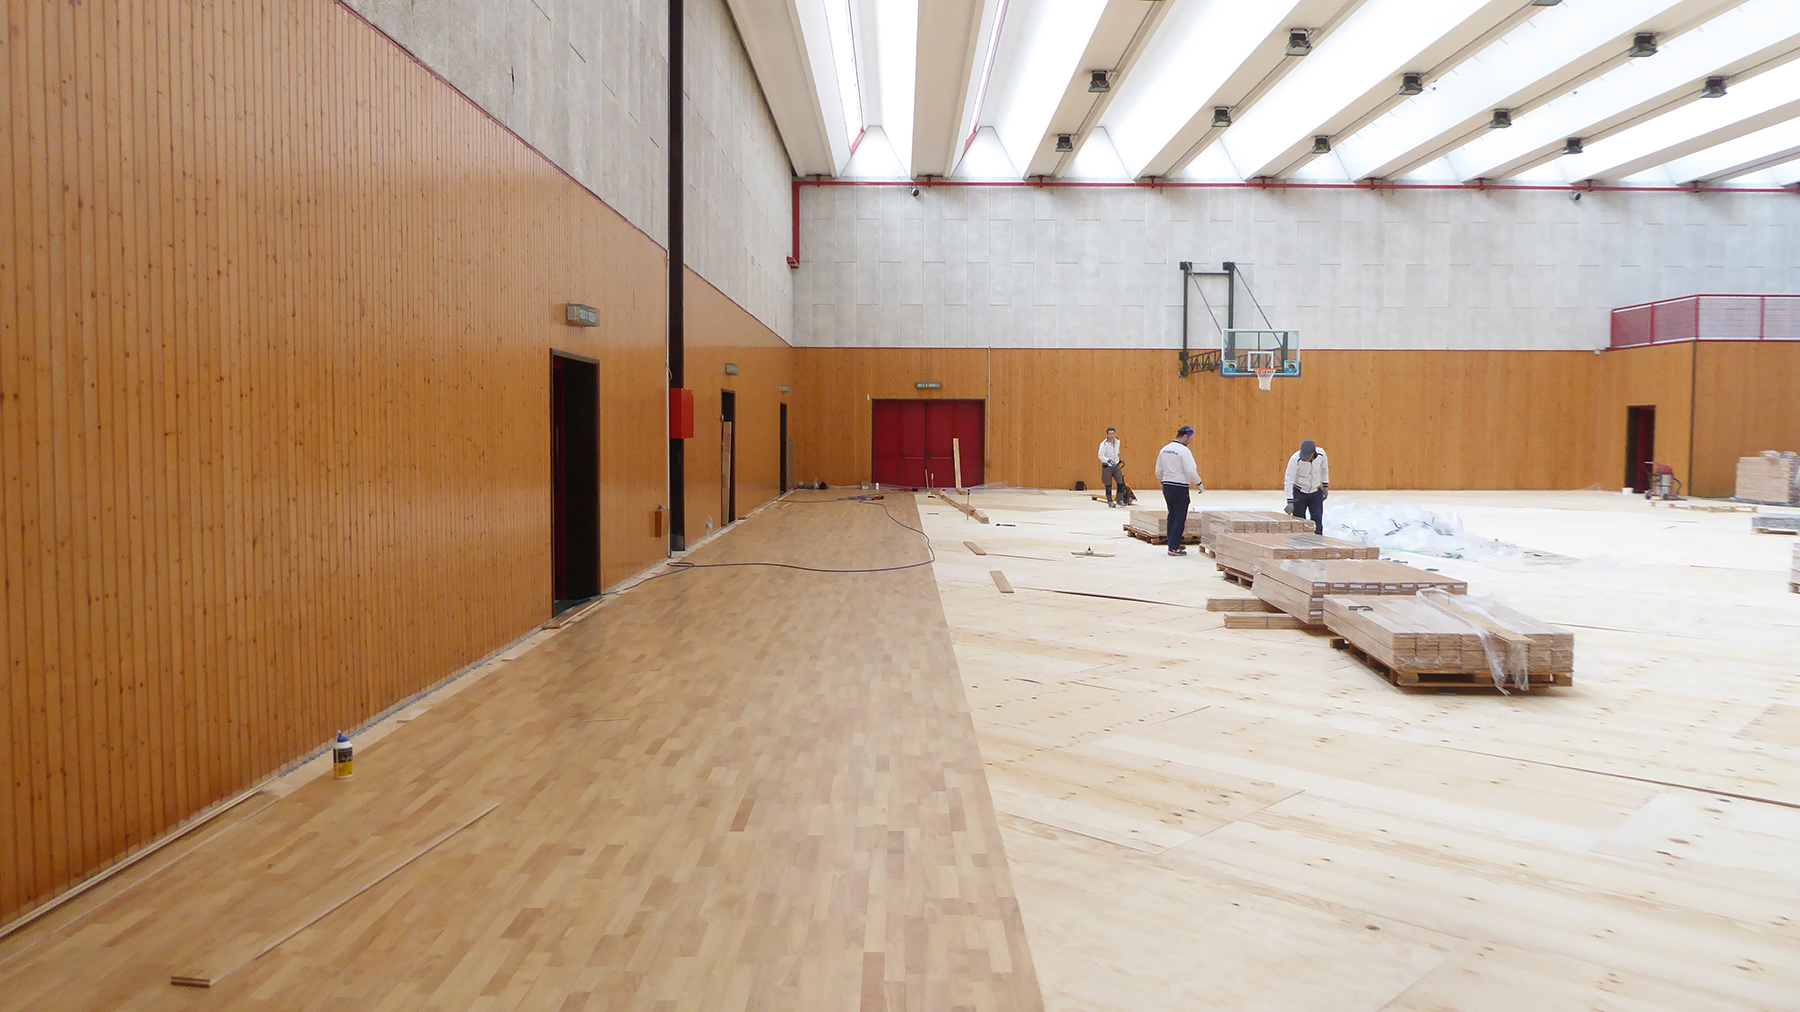 The laying of the sports parquet in hevea rubber wood